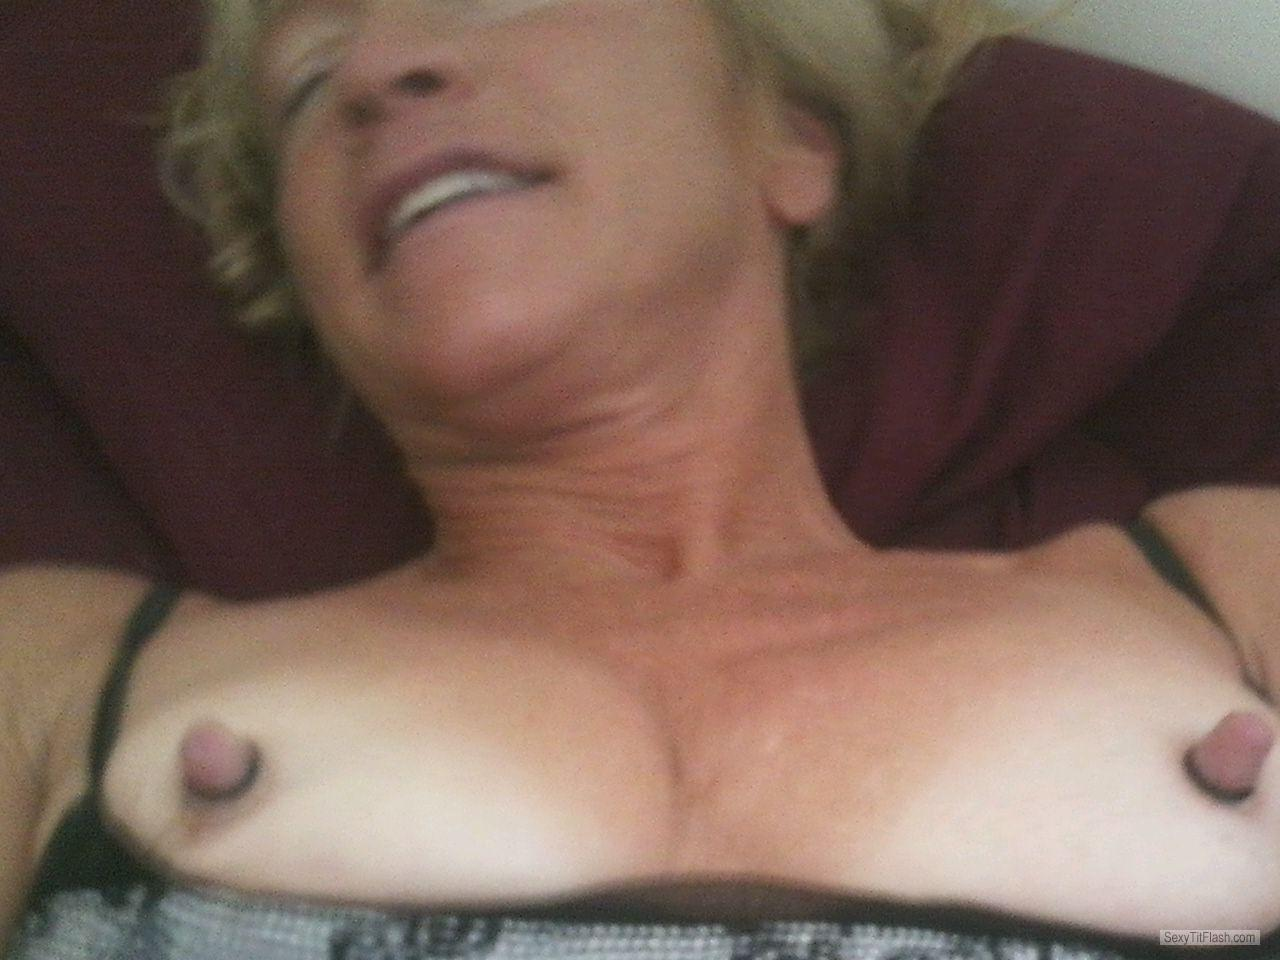 Small Tits Of My Wife Ccreemy